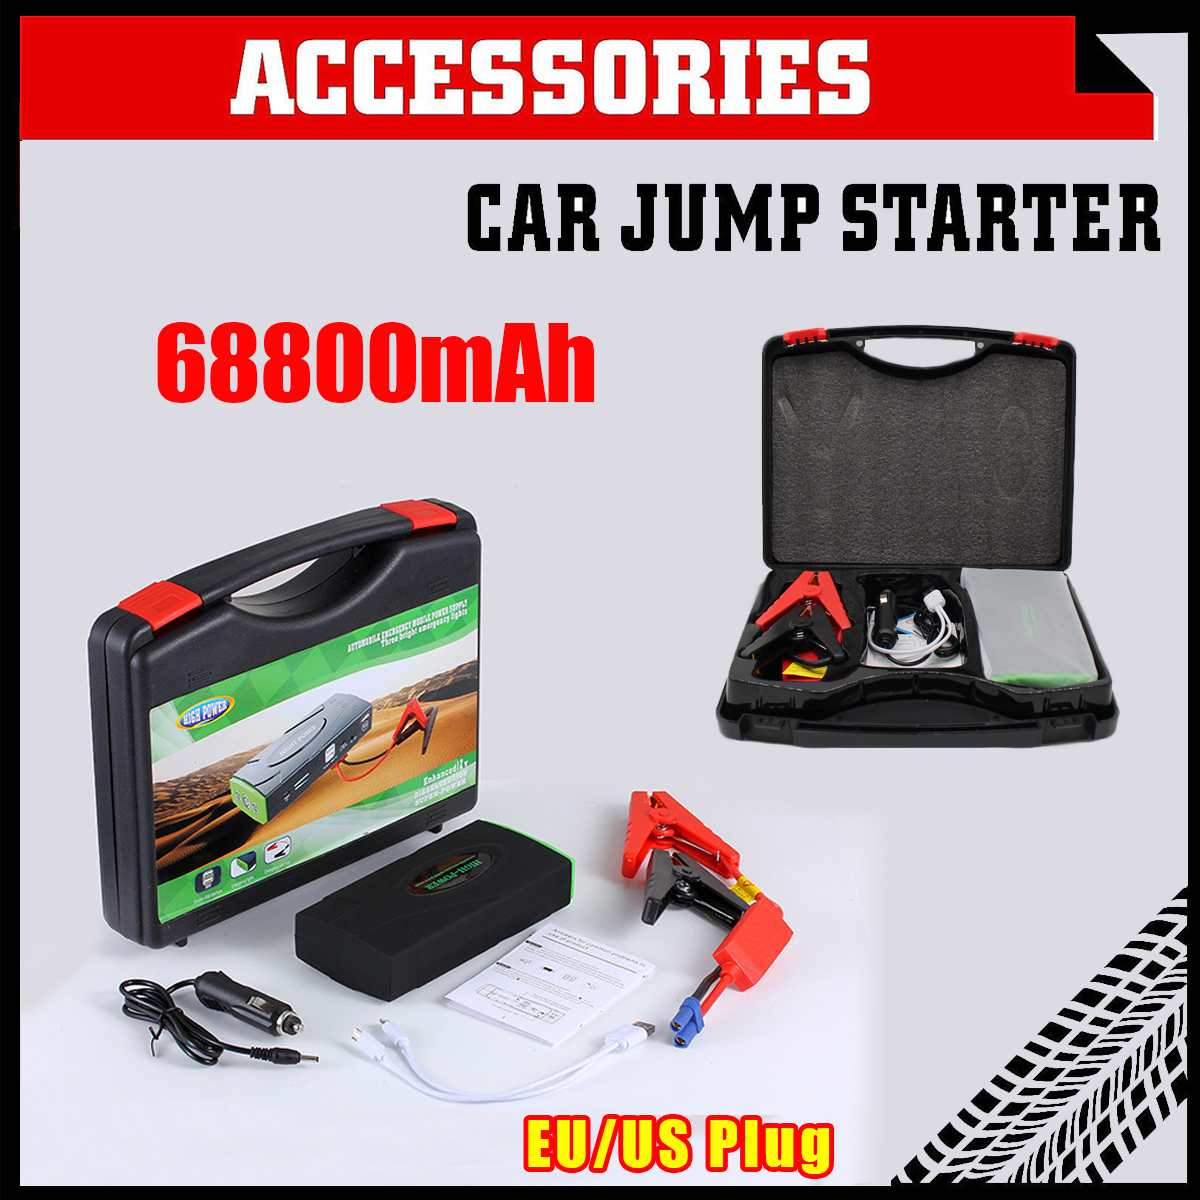 68800mAh 12V 600A LED Multifunction Jump Starter Portable Car Battery Booster Charger Booster Power Bank Starting Device